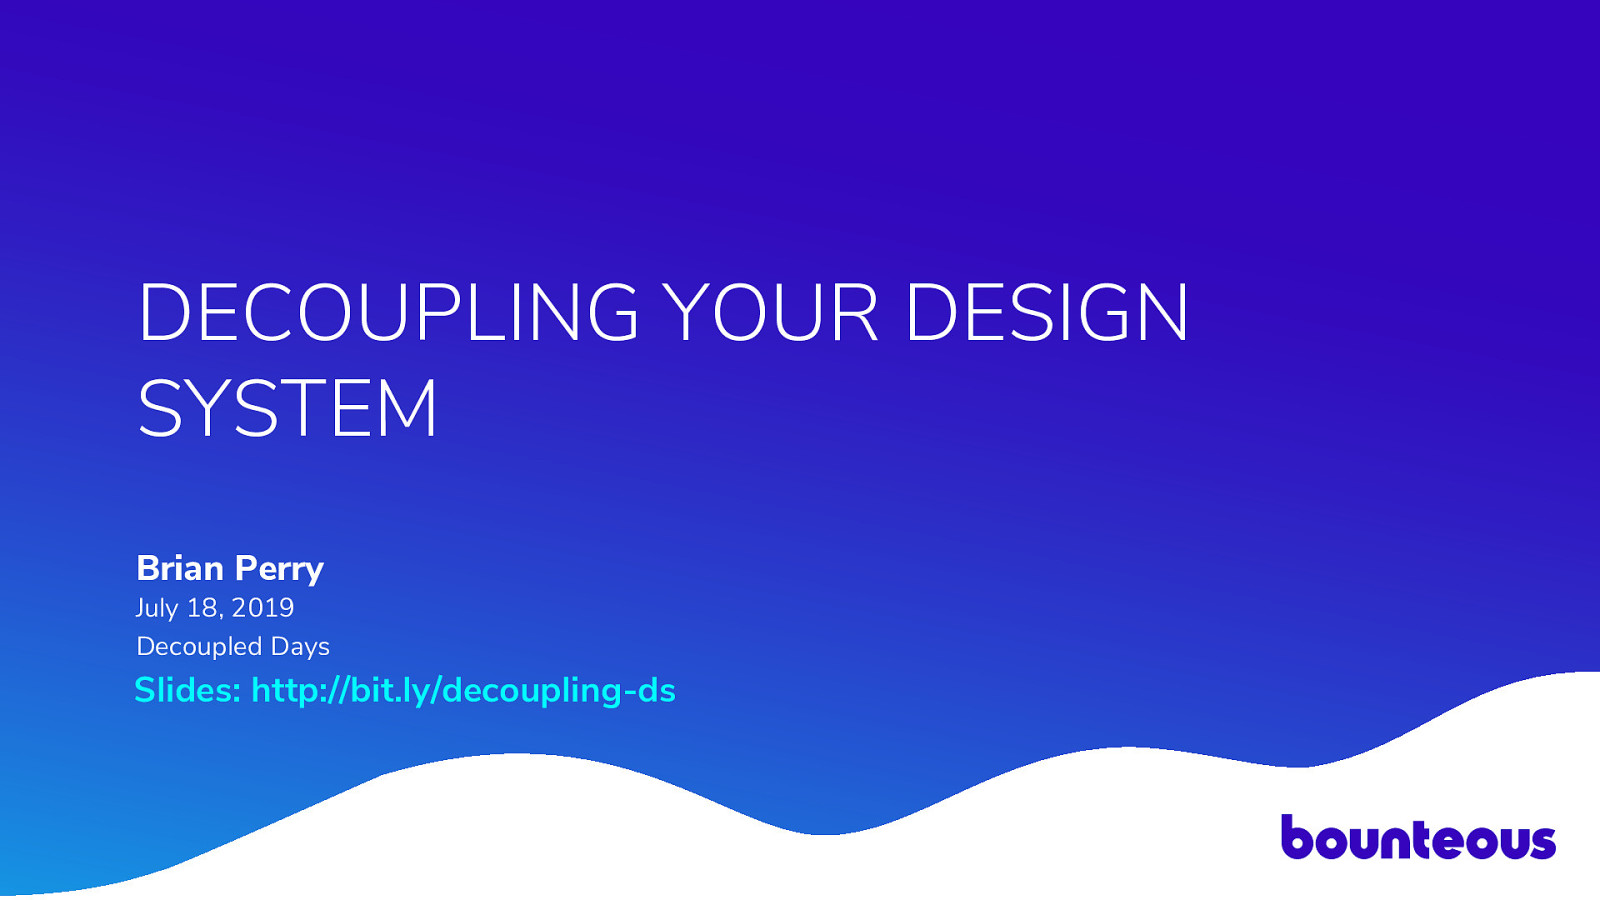 Decoupling Your Design System